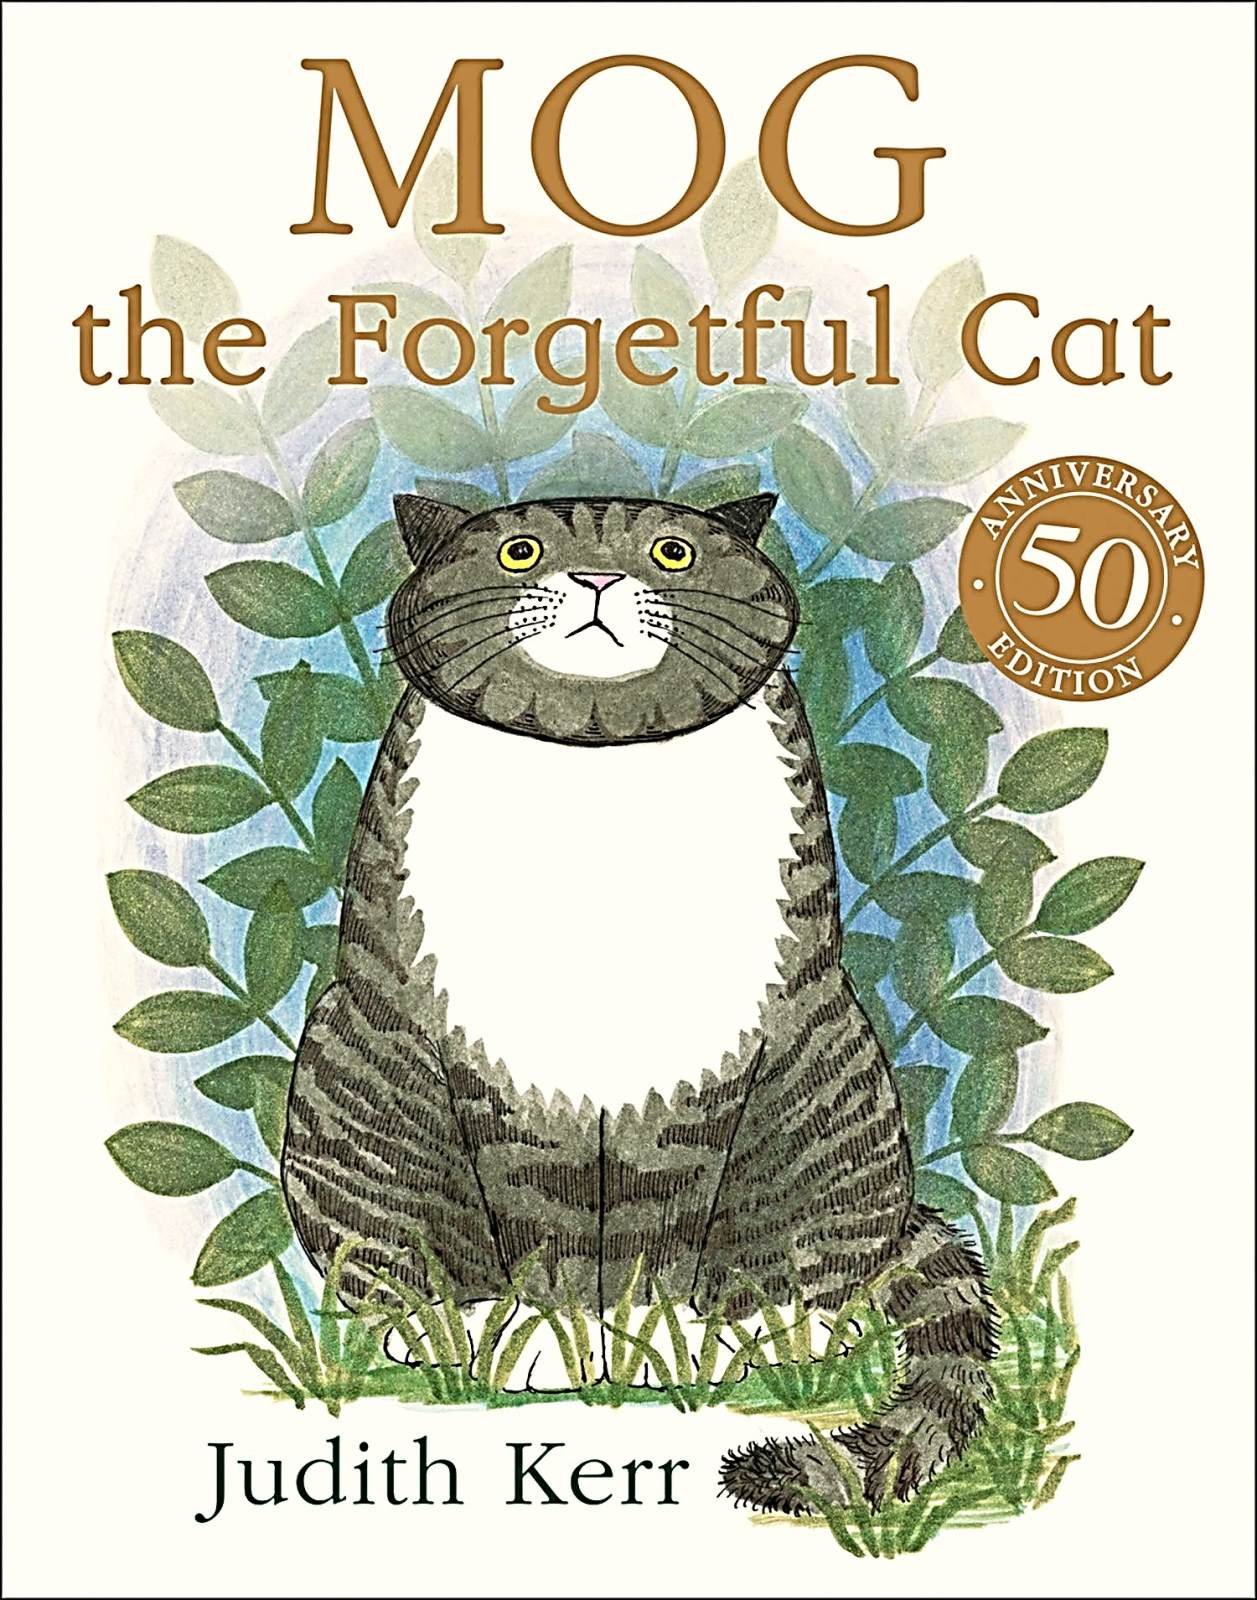 Mog_The_Forgetful_Cal